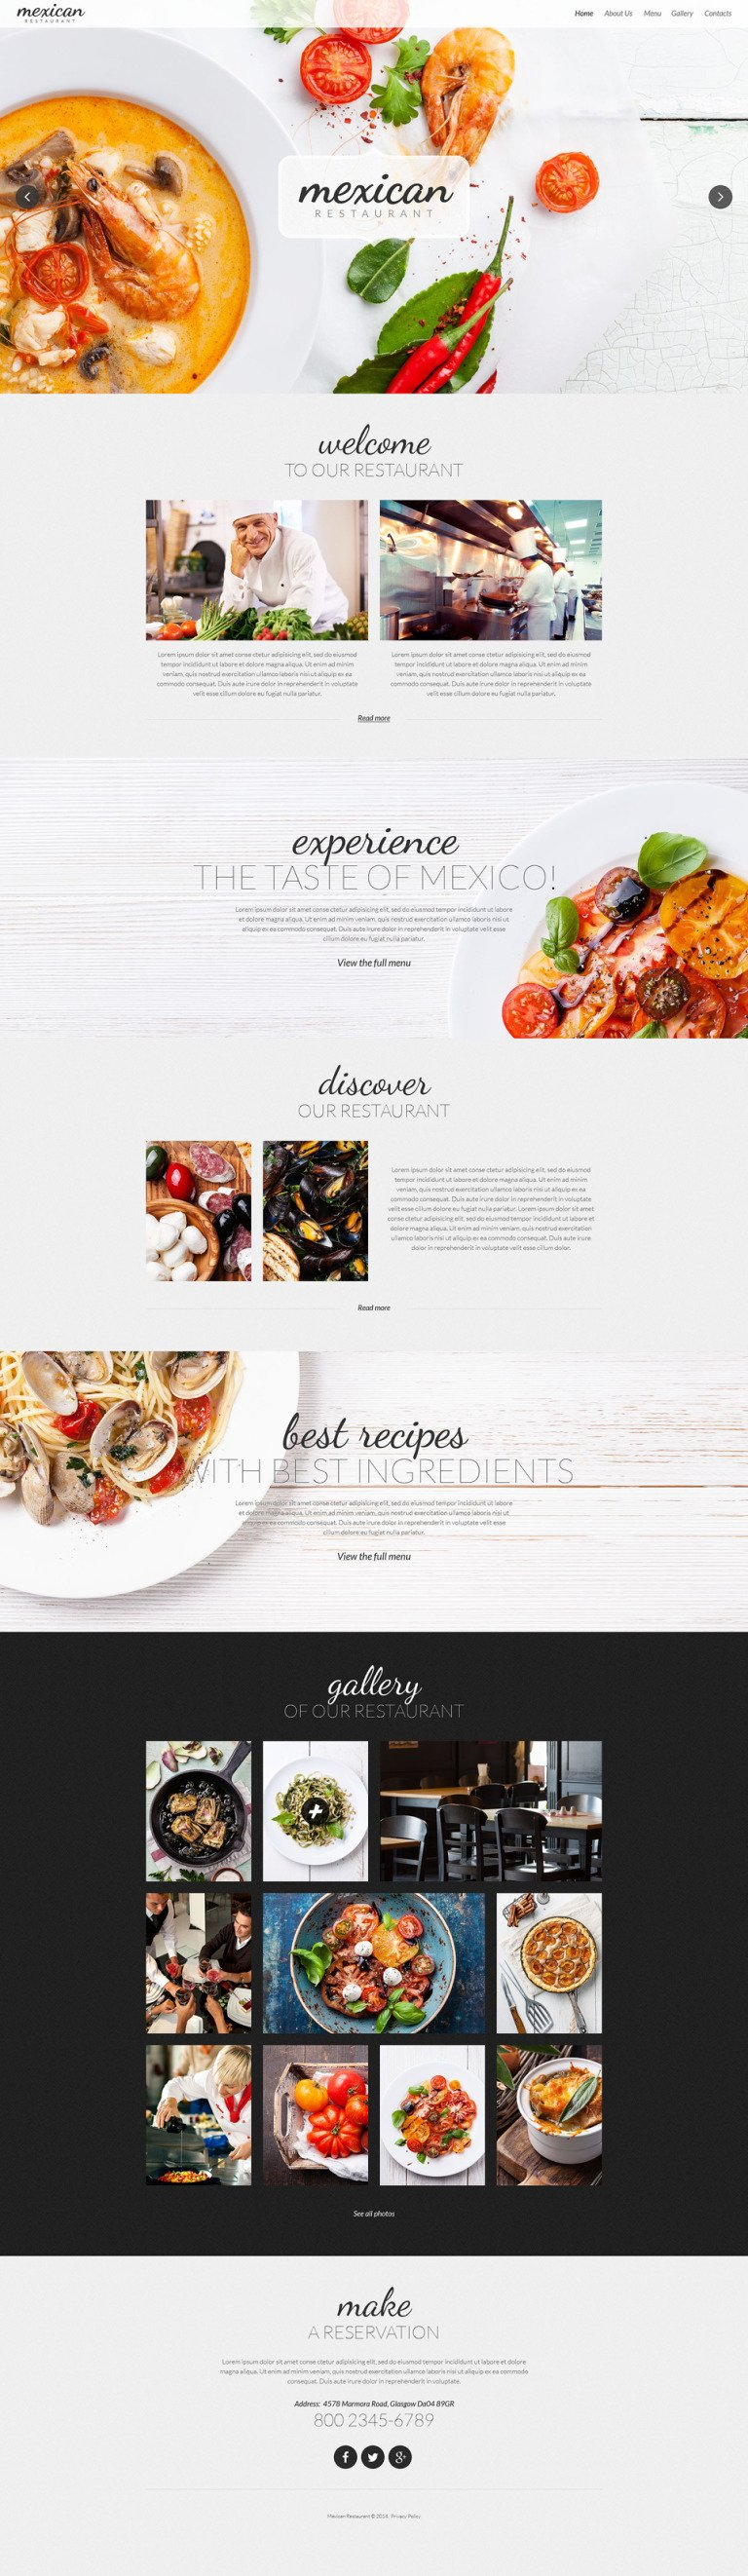 Mexican Restaurant Responsive Website Template New Screenshots BIG